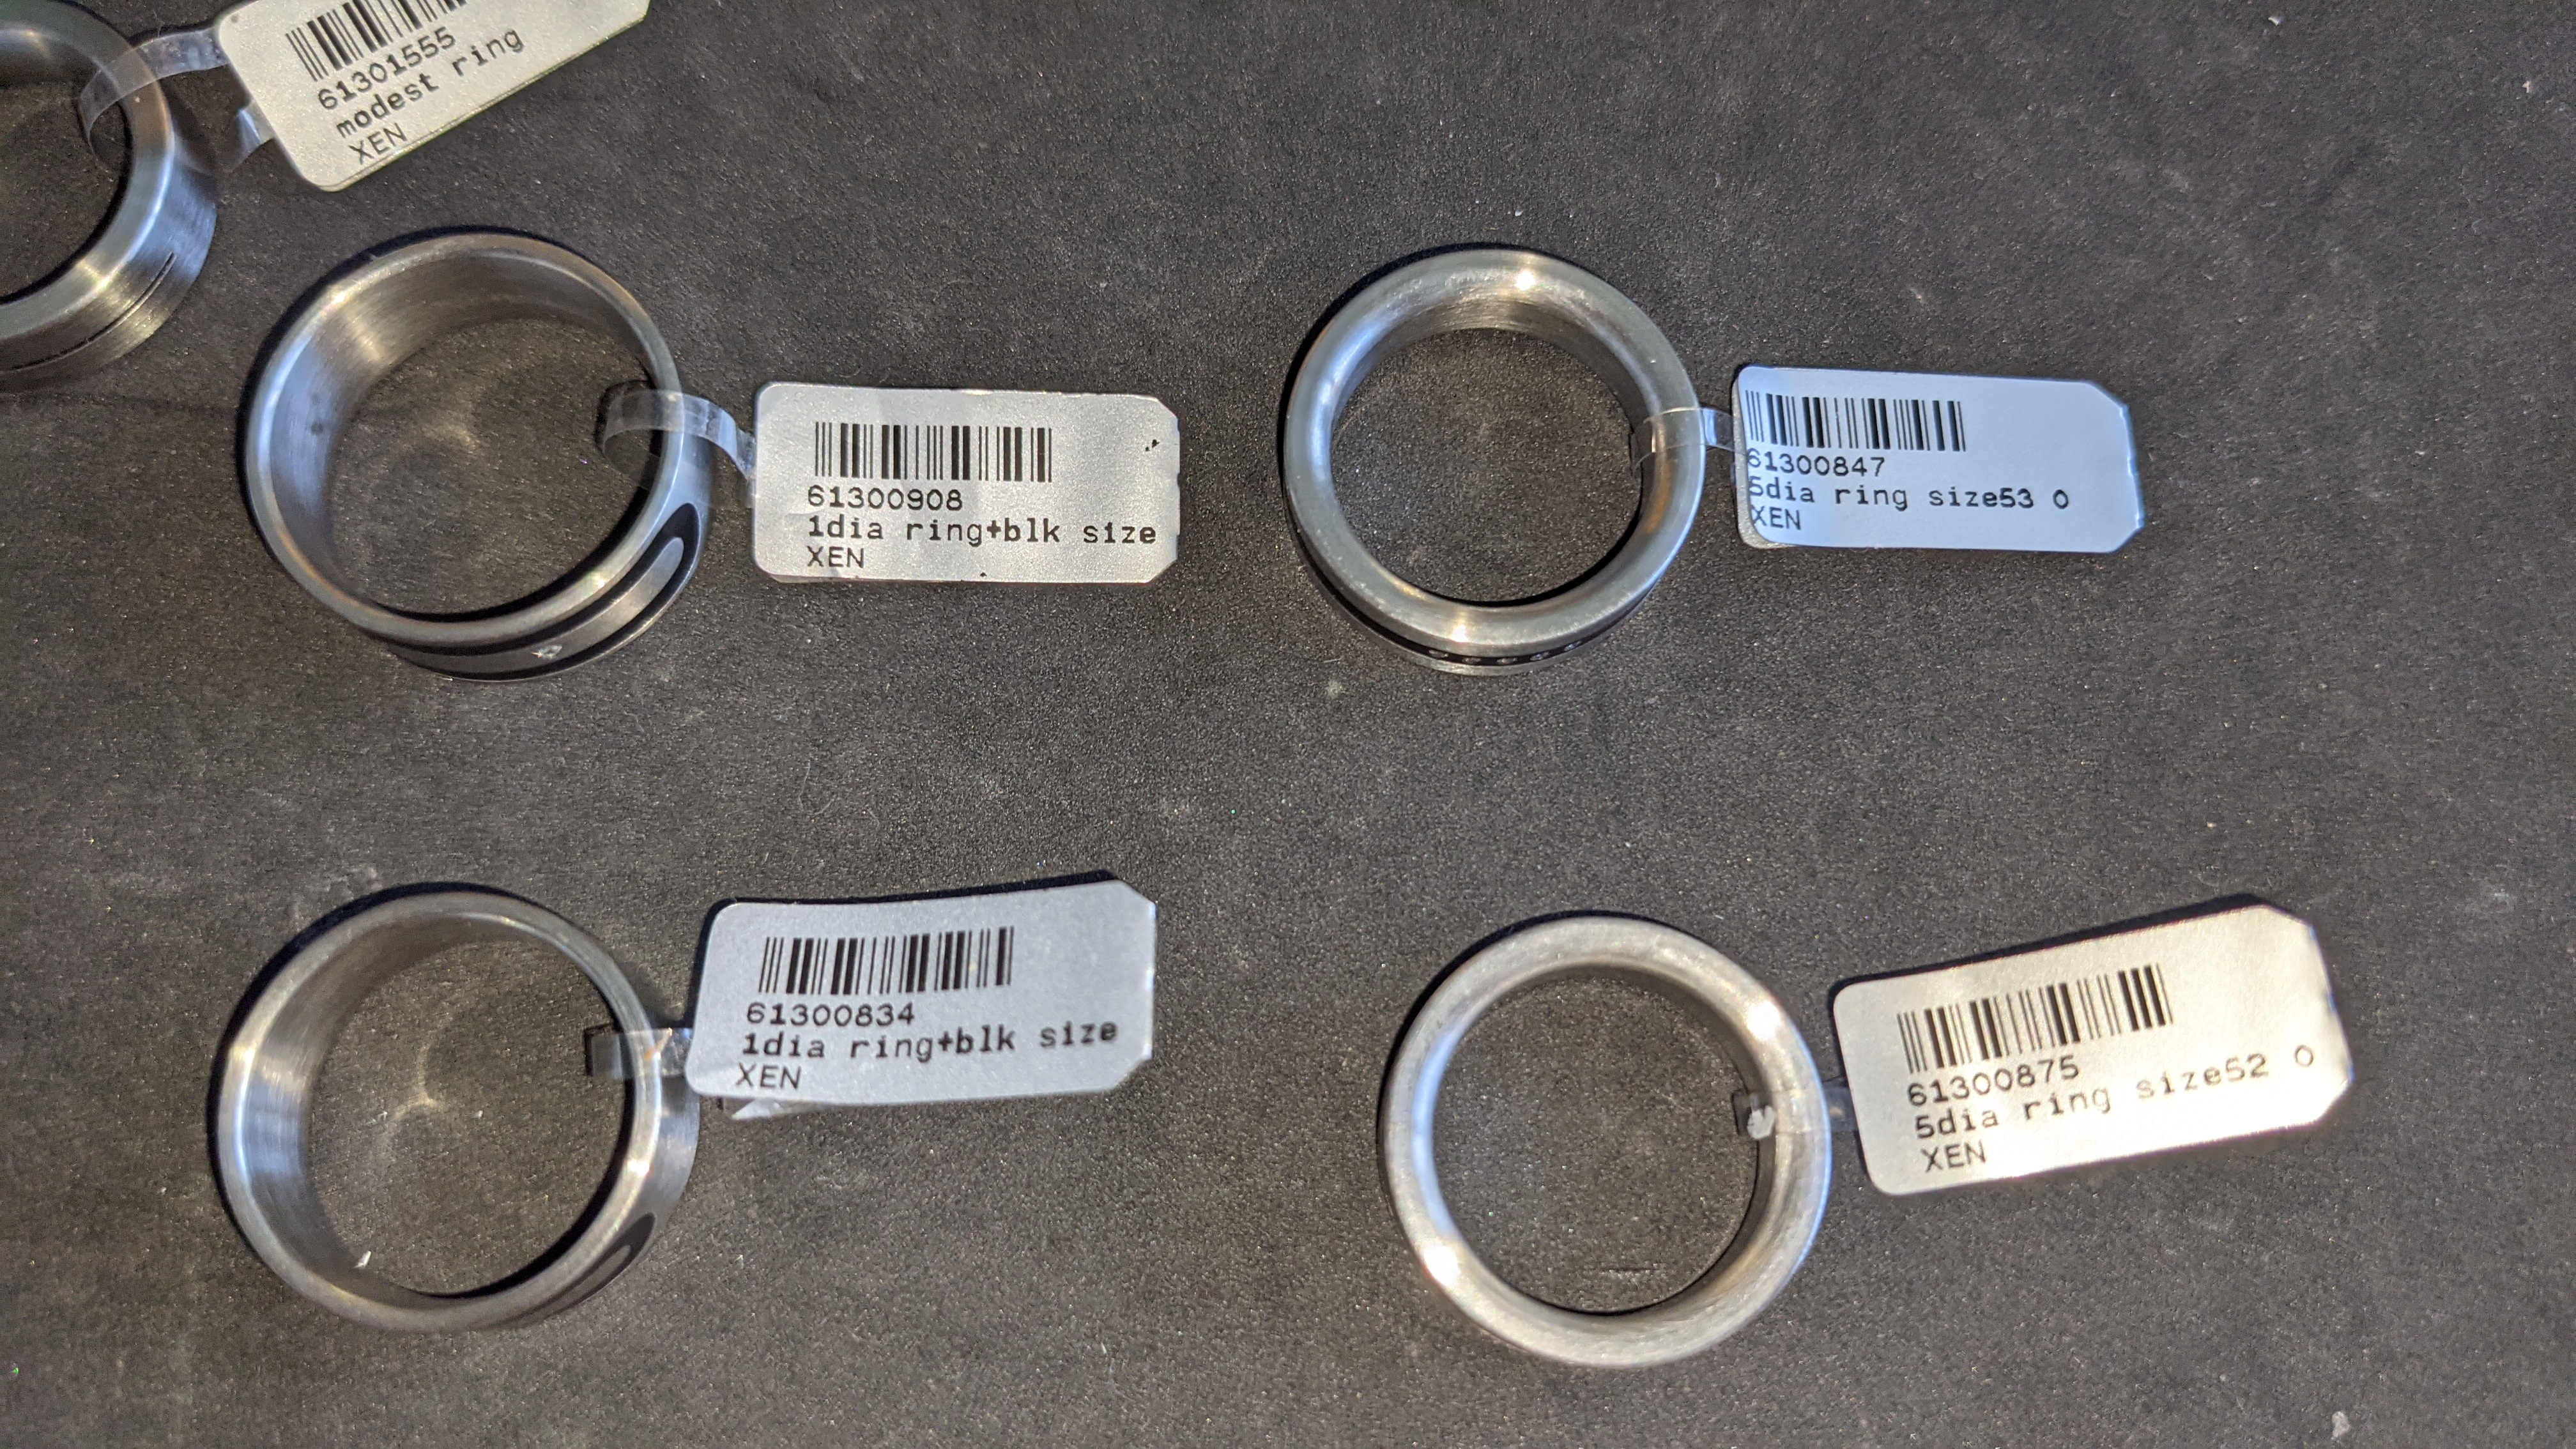 7 off assorted stainless steel & diamond rings. RRPs from £110 - £170. Total RRP £1,028 - Image 11 of 12